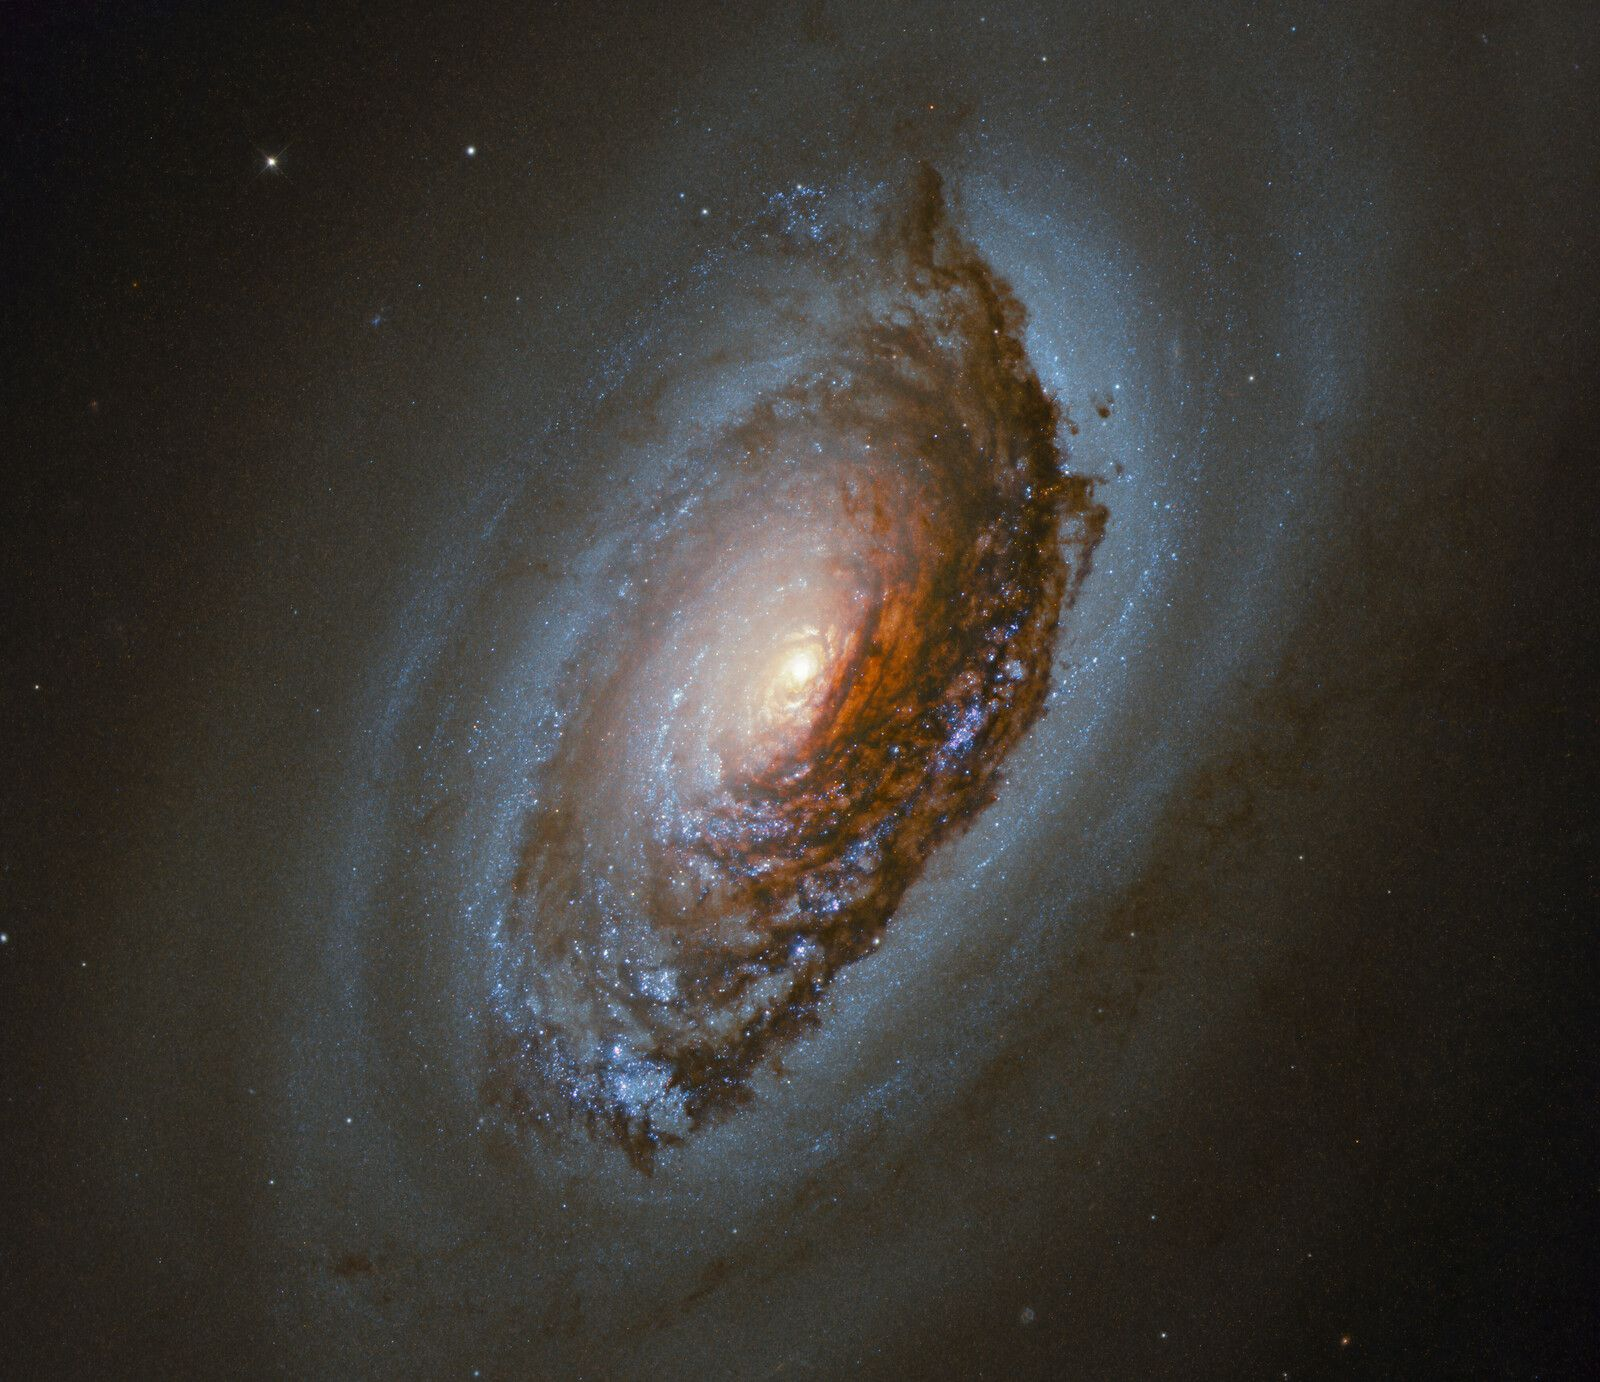 Eye in the Sky (ESA/Hubble & NASA, J. Lee and the PHANGS-HST Team; CC BY 4.0 Acknowledgement: Judy Schmidt)